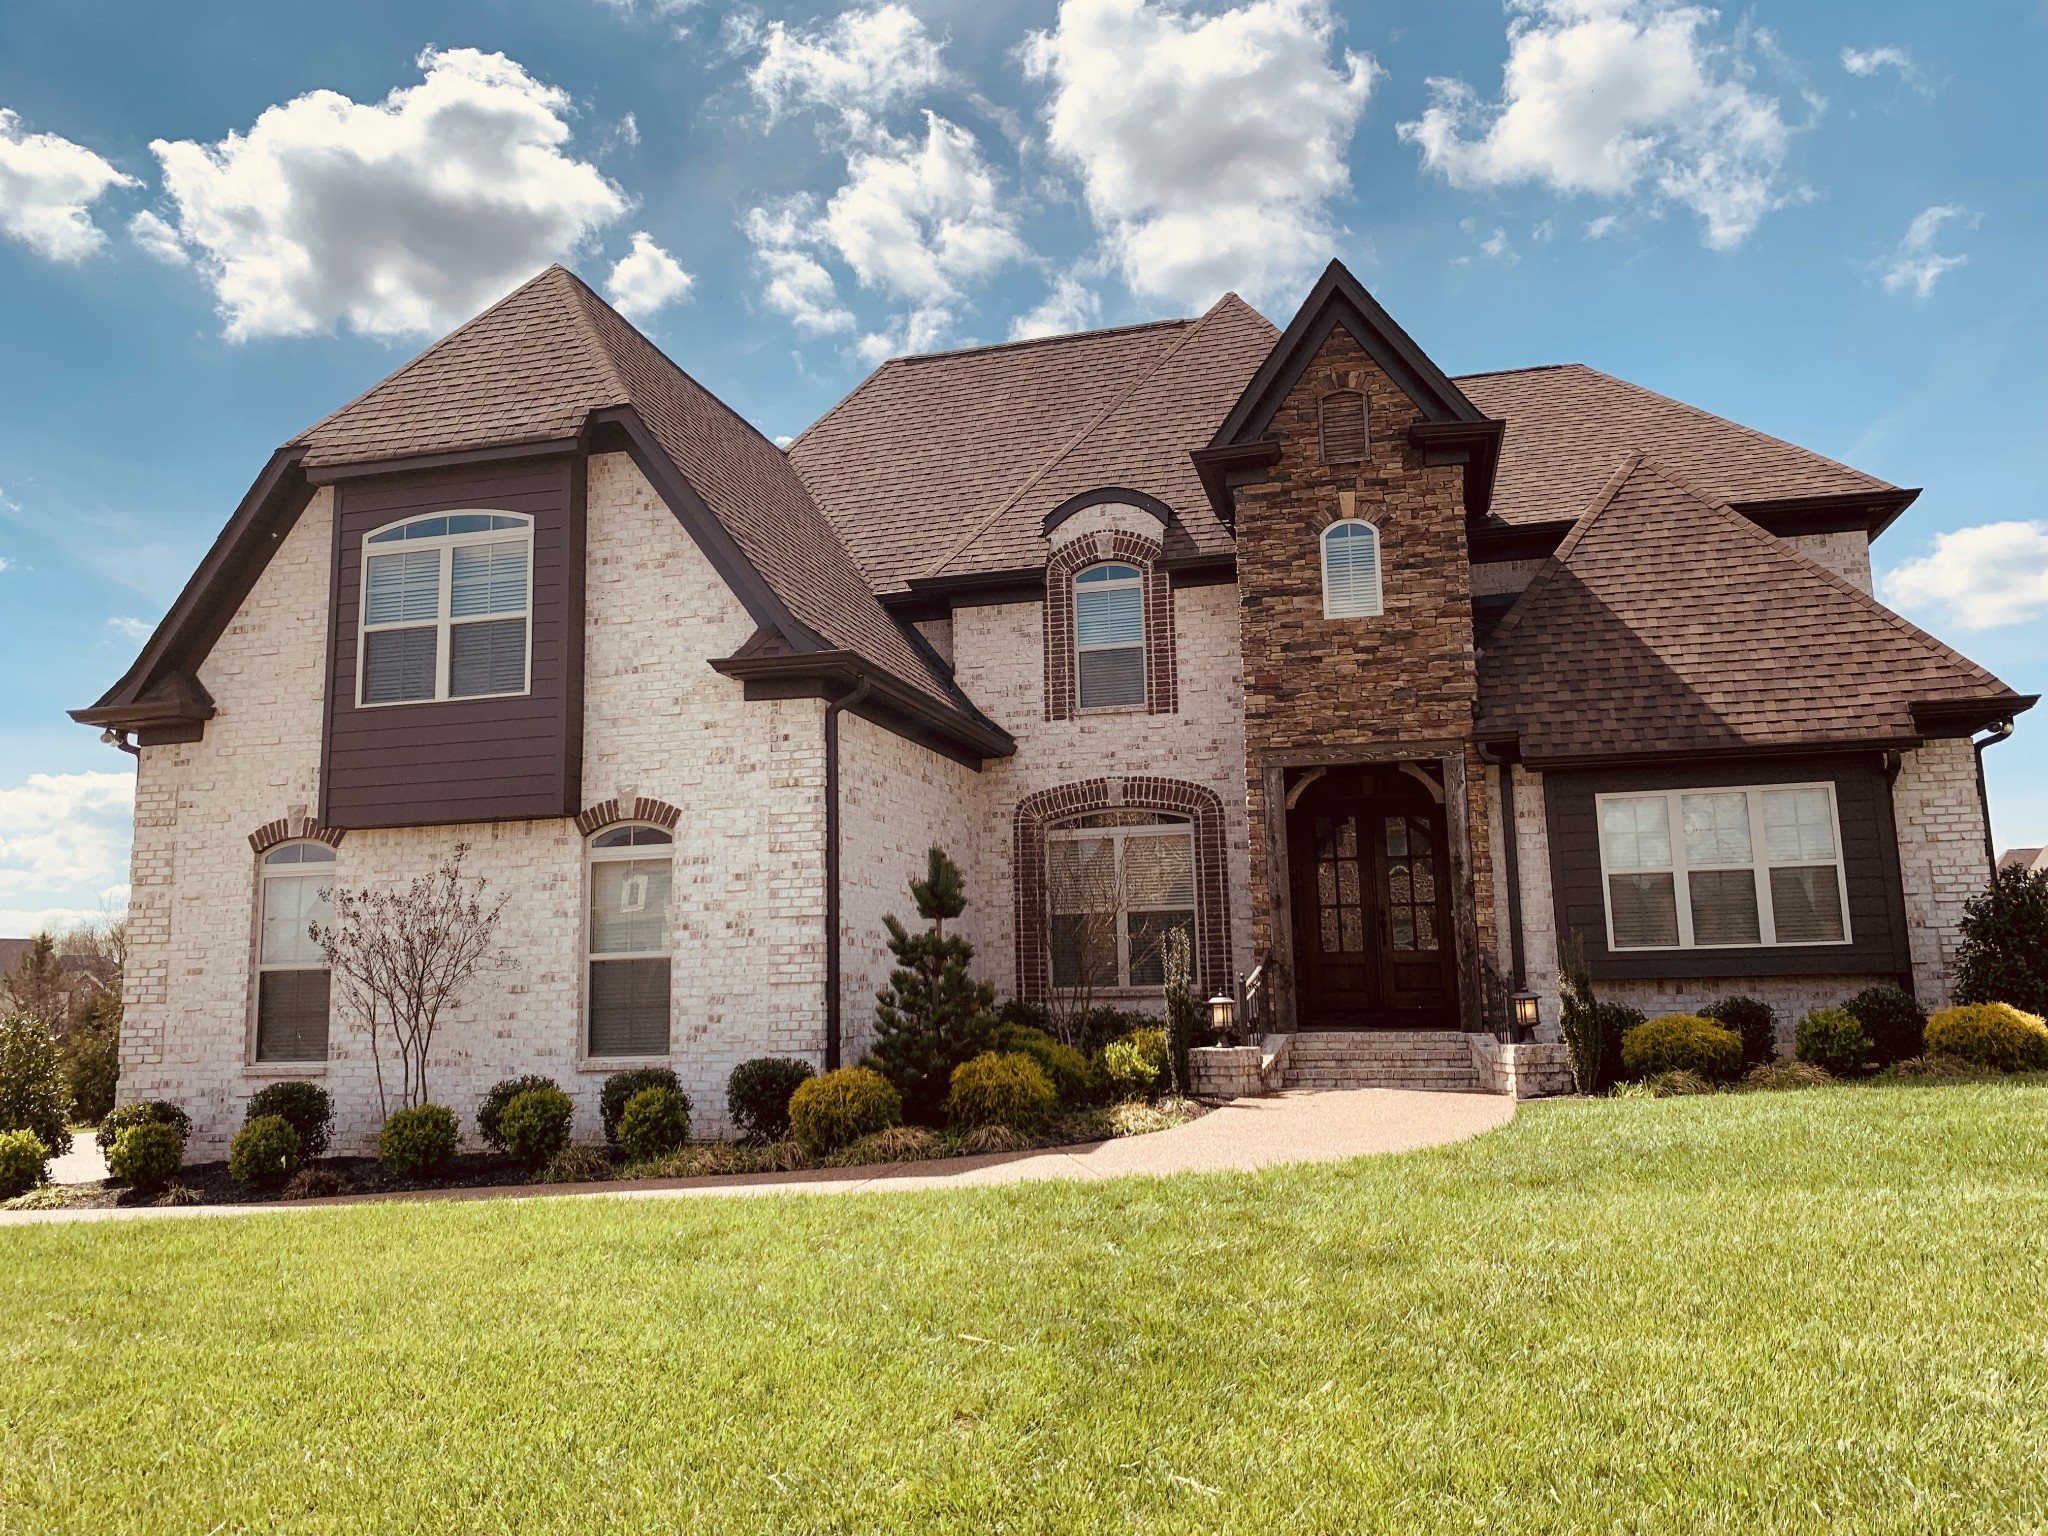 2000 Beechhaven Circle, Mount Juliet, TN 37122 - Mount Juliet, TN real estate listing